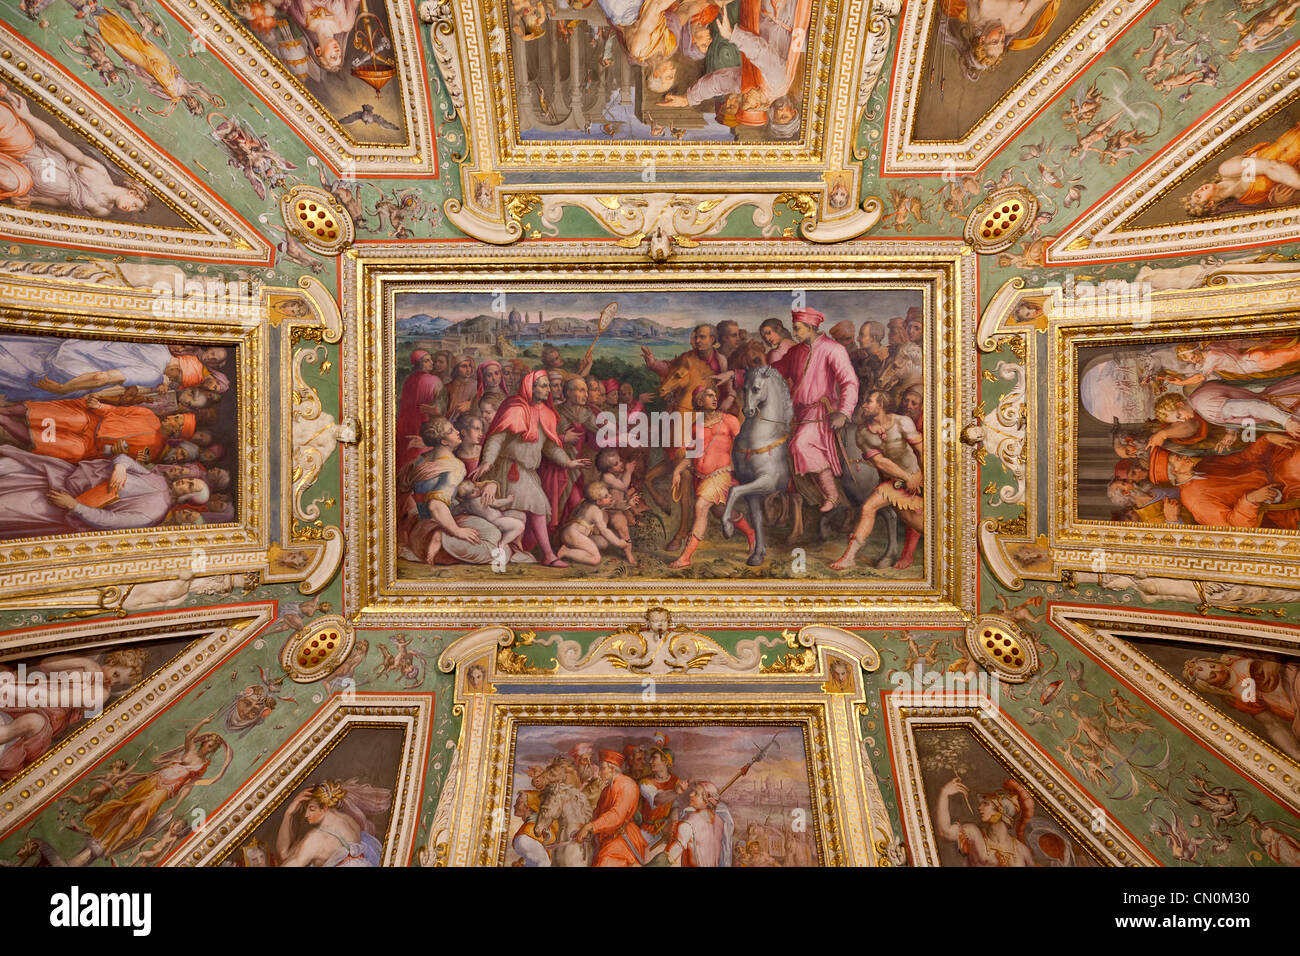 Europe, Italy, Florence, Ceiling panel in the Palazzo Vecchio, Unesco World Heritage Site, - Stock Image